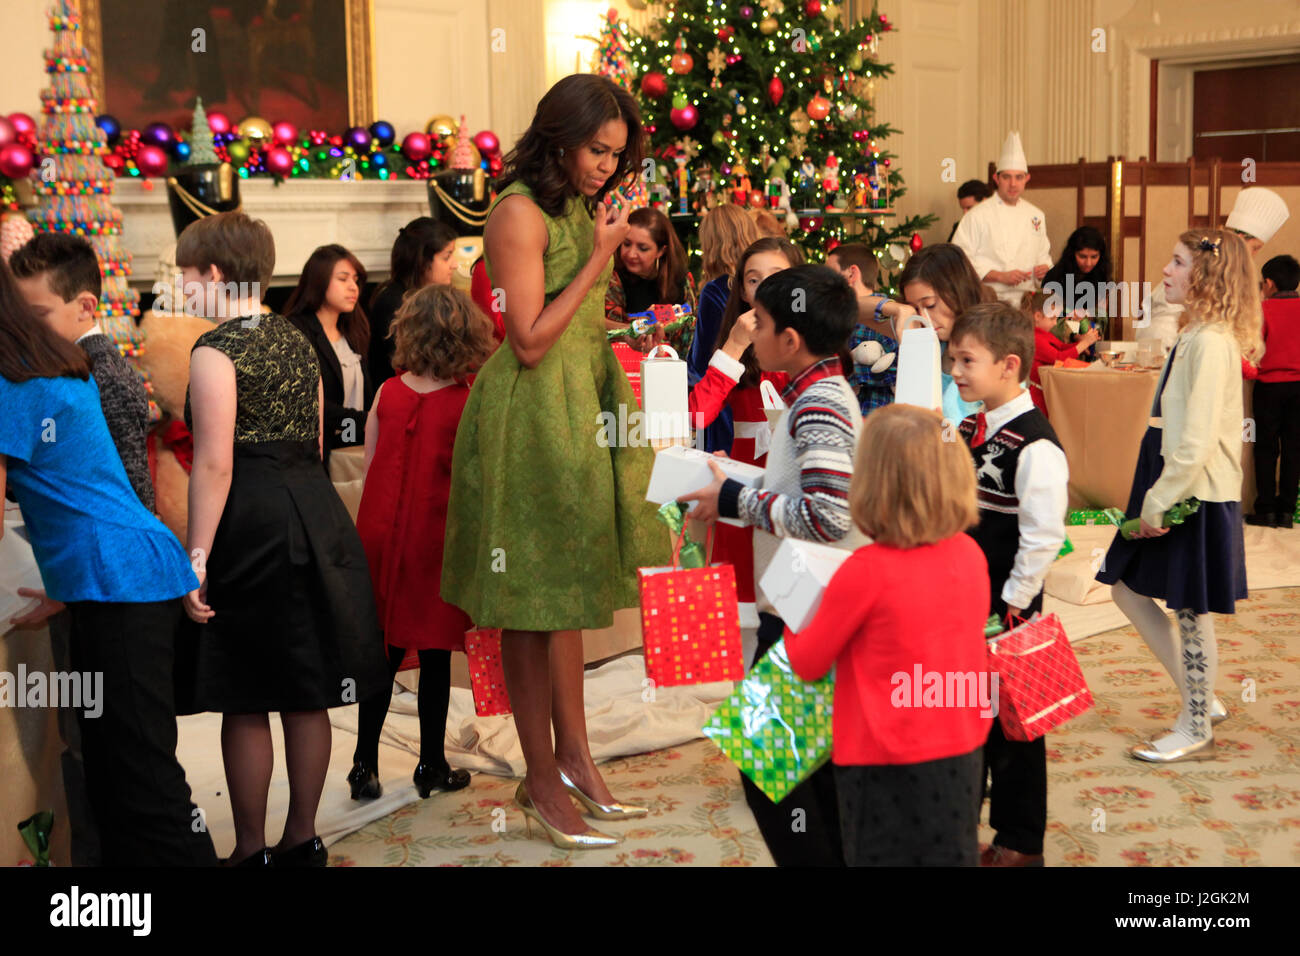 Michelle Obama at an Christmas event for the children of service members. - Stock Image